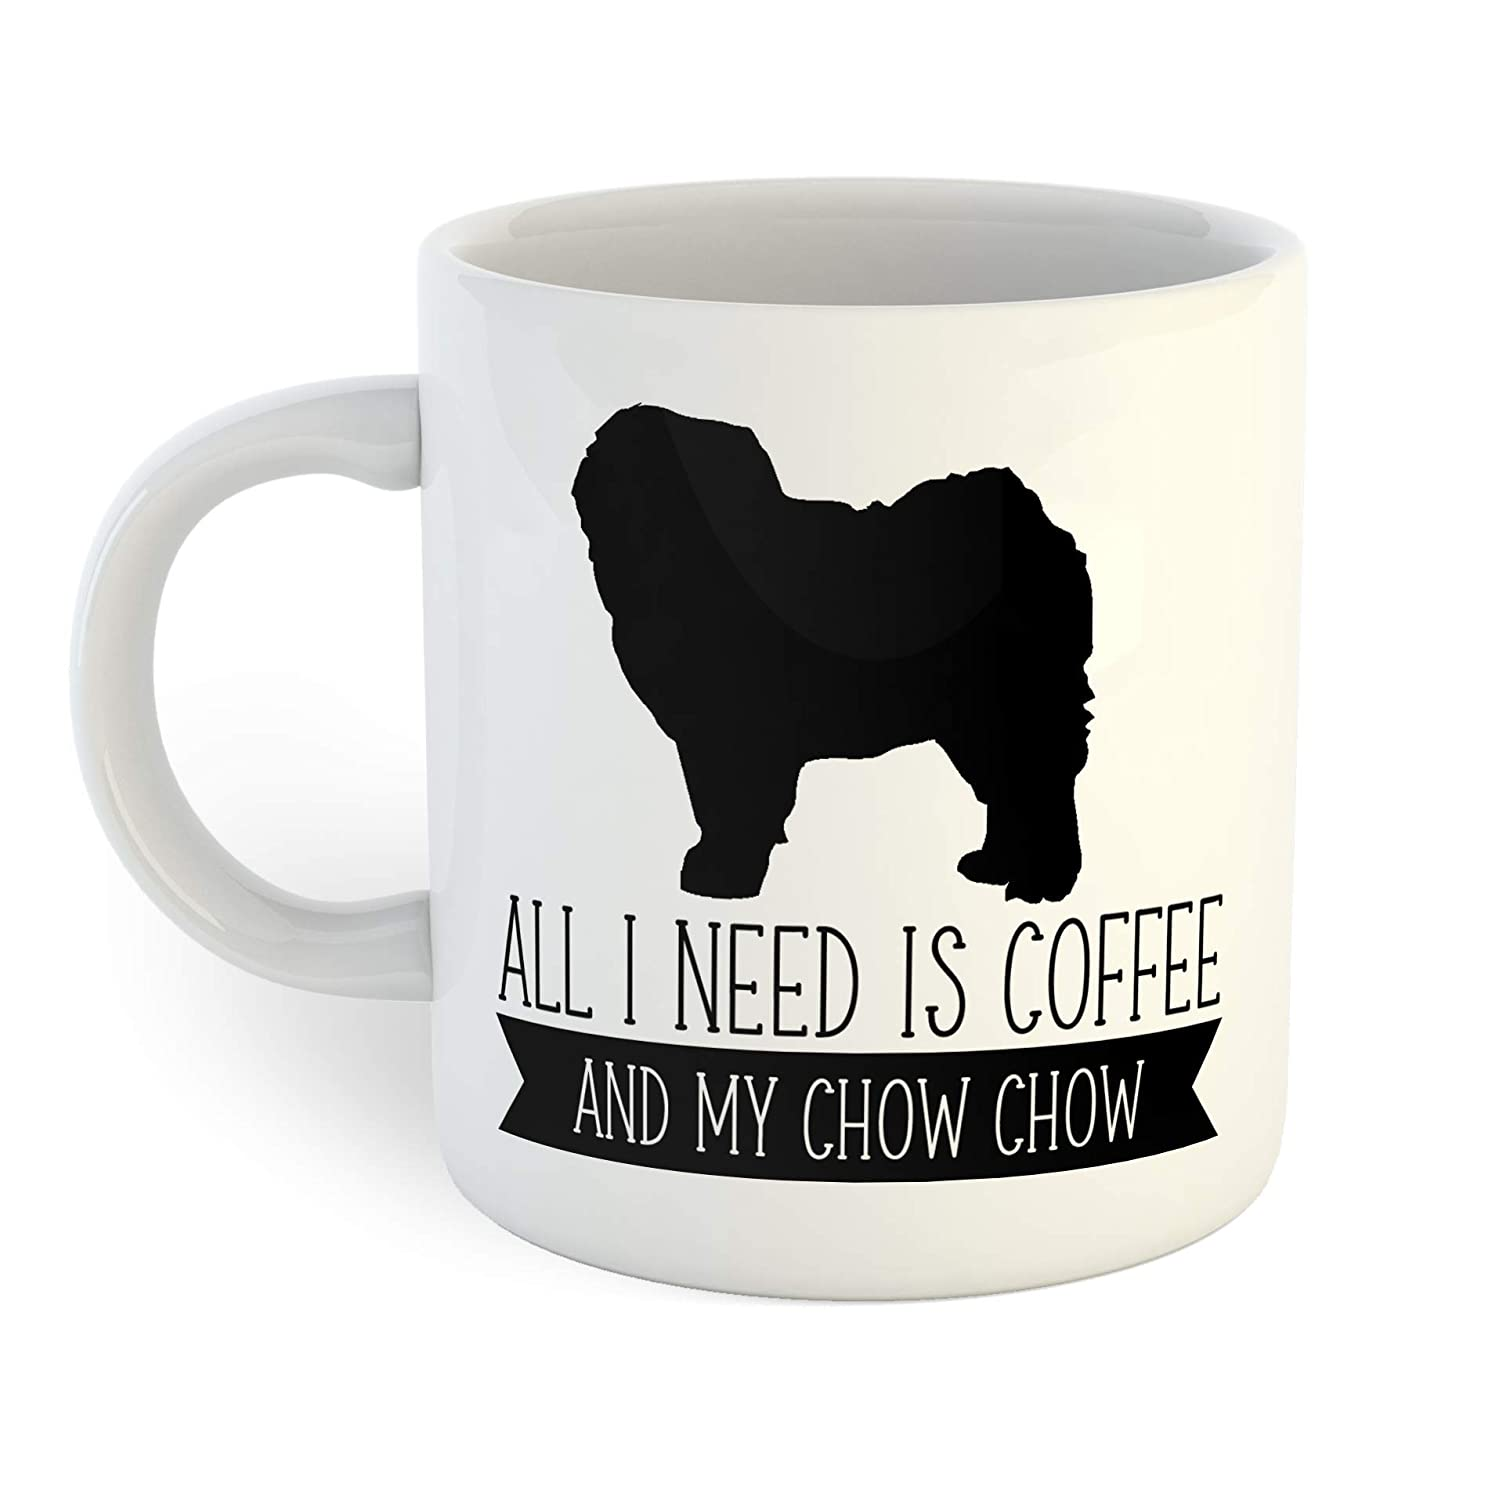 All I Need Is Coffee And My Chow Chow Coffee Mug Walmart Com Walmart Com